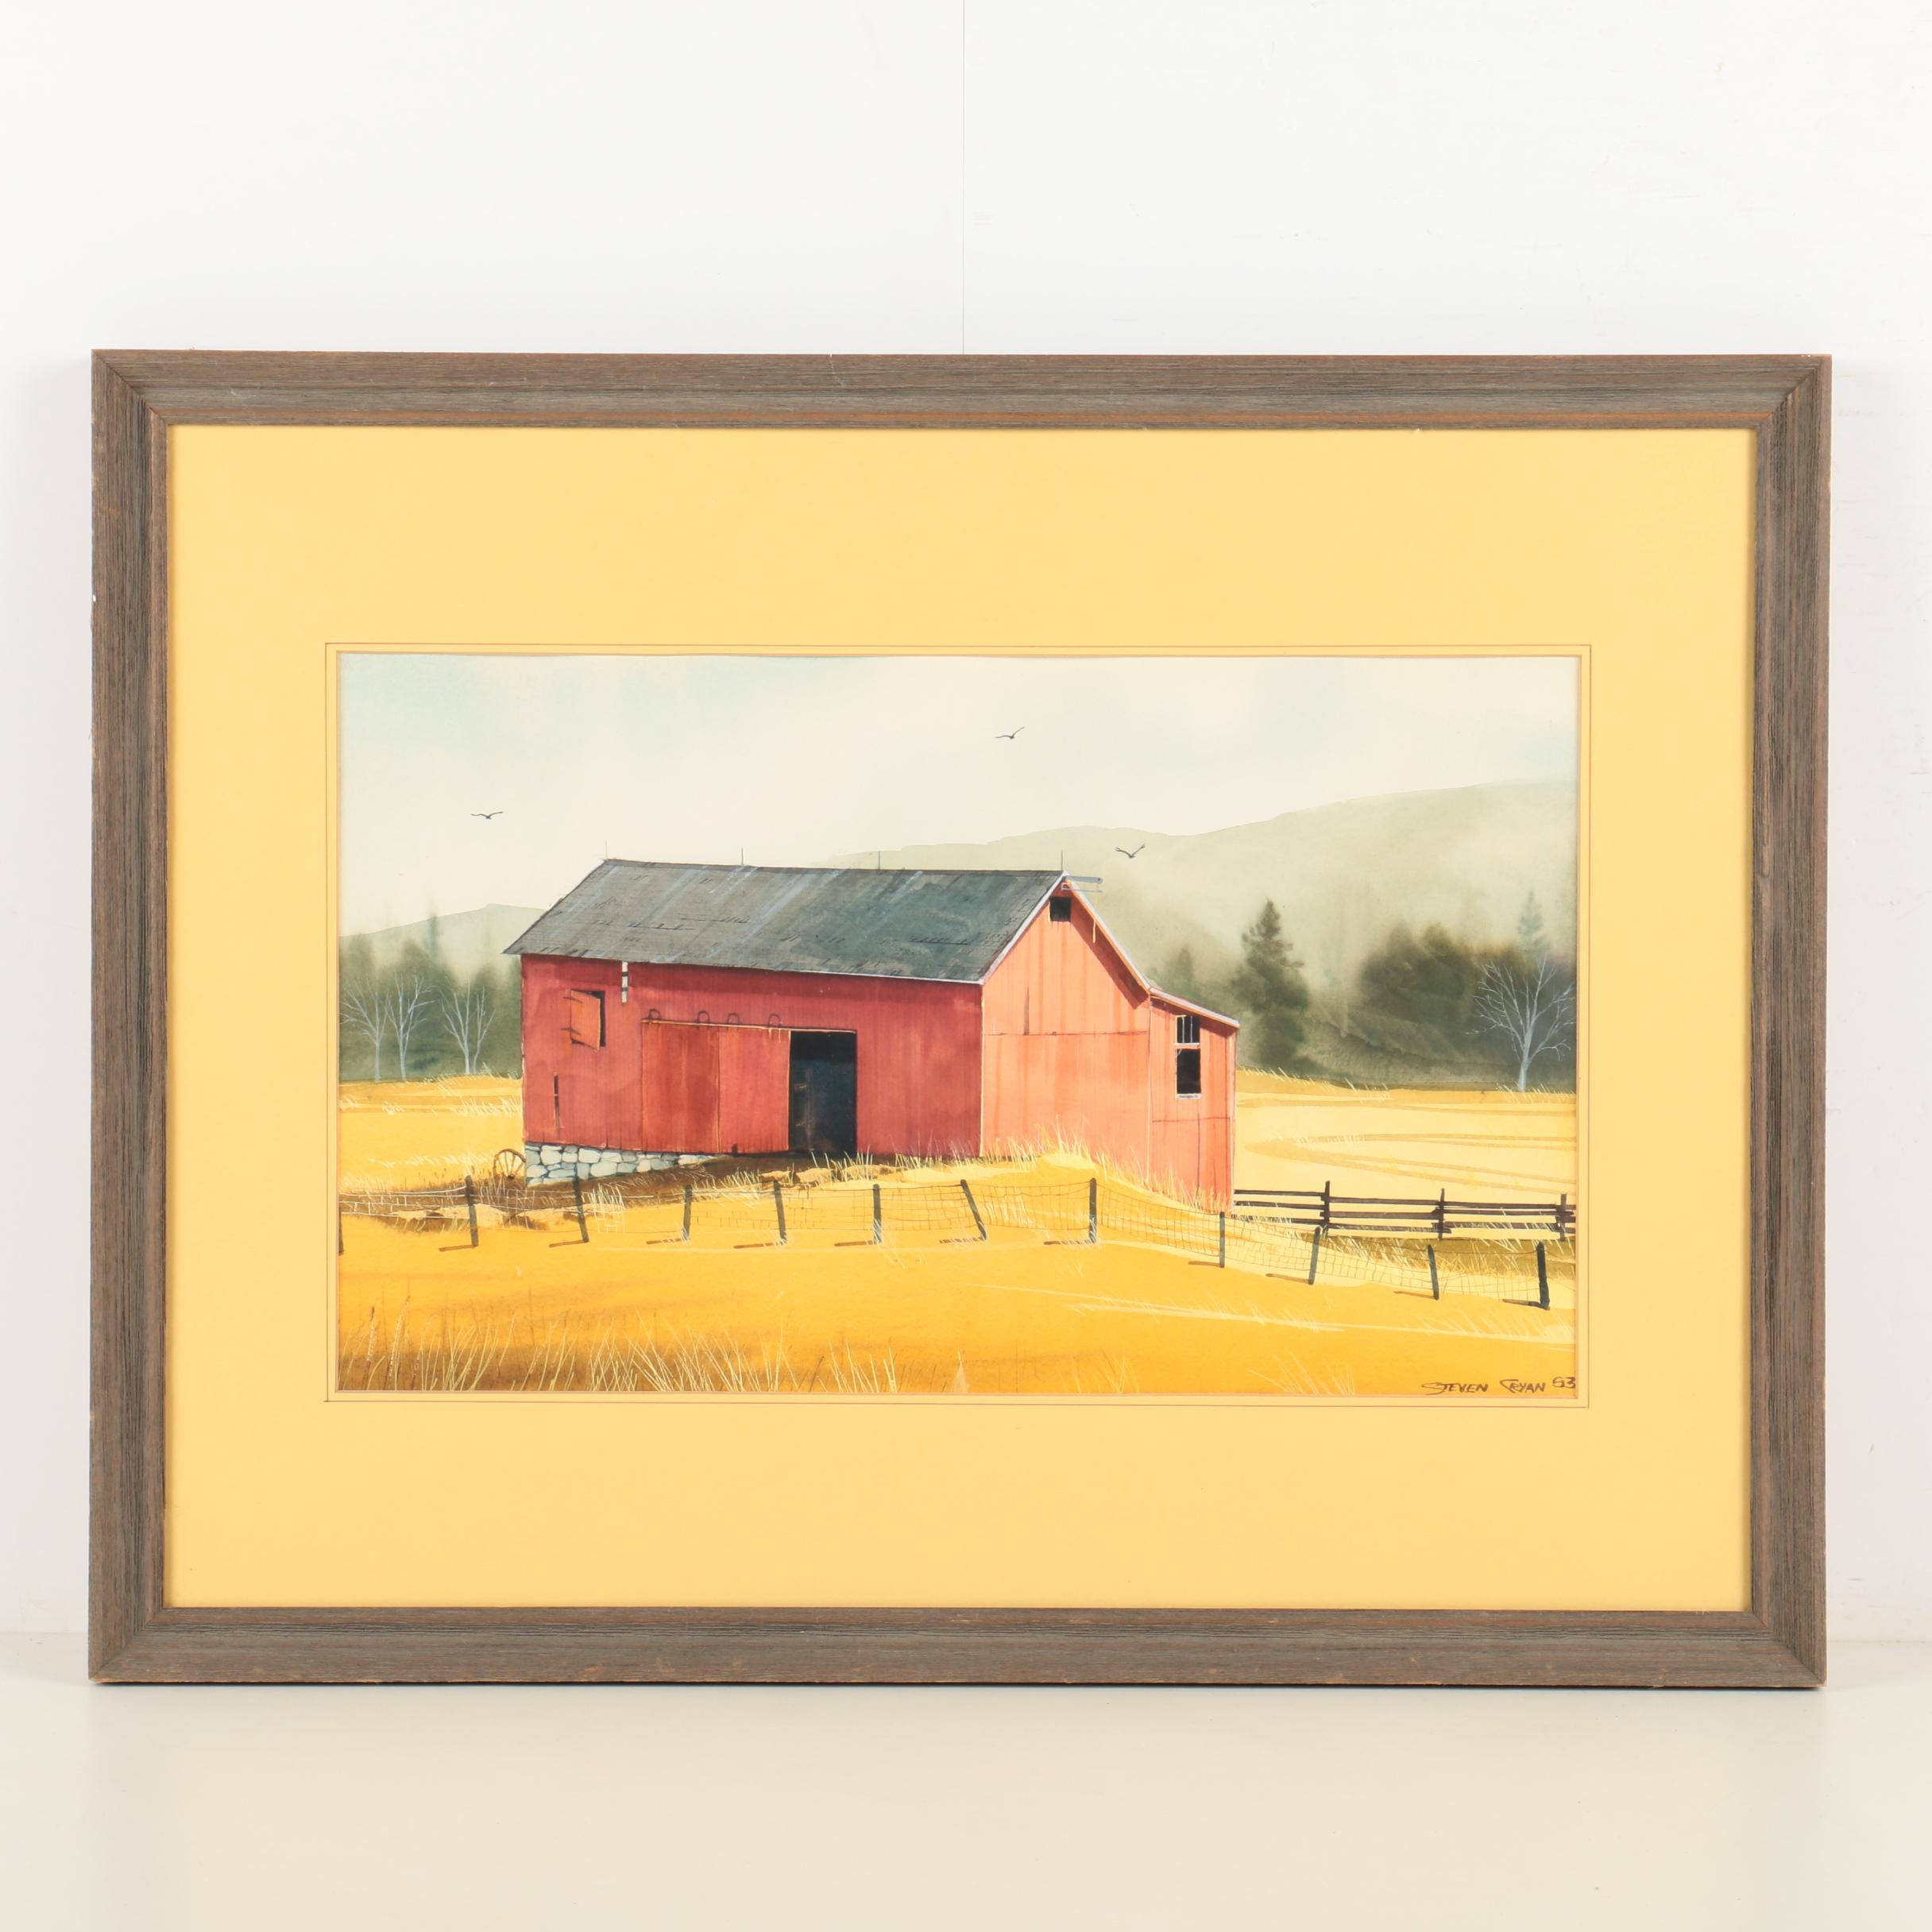 Steven Cryan Watercolor on Paper of Red Barn